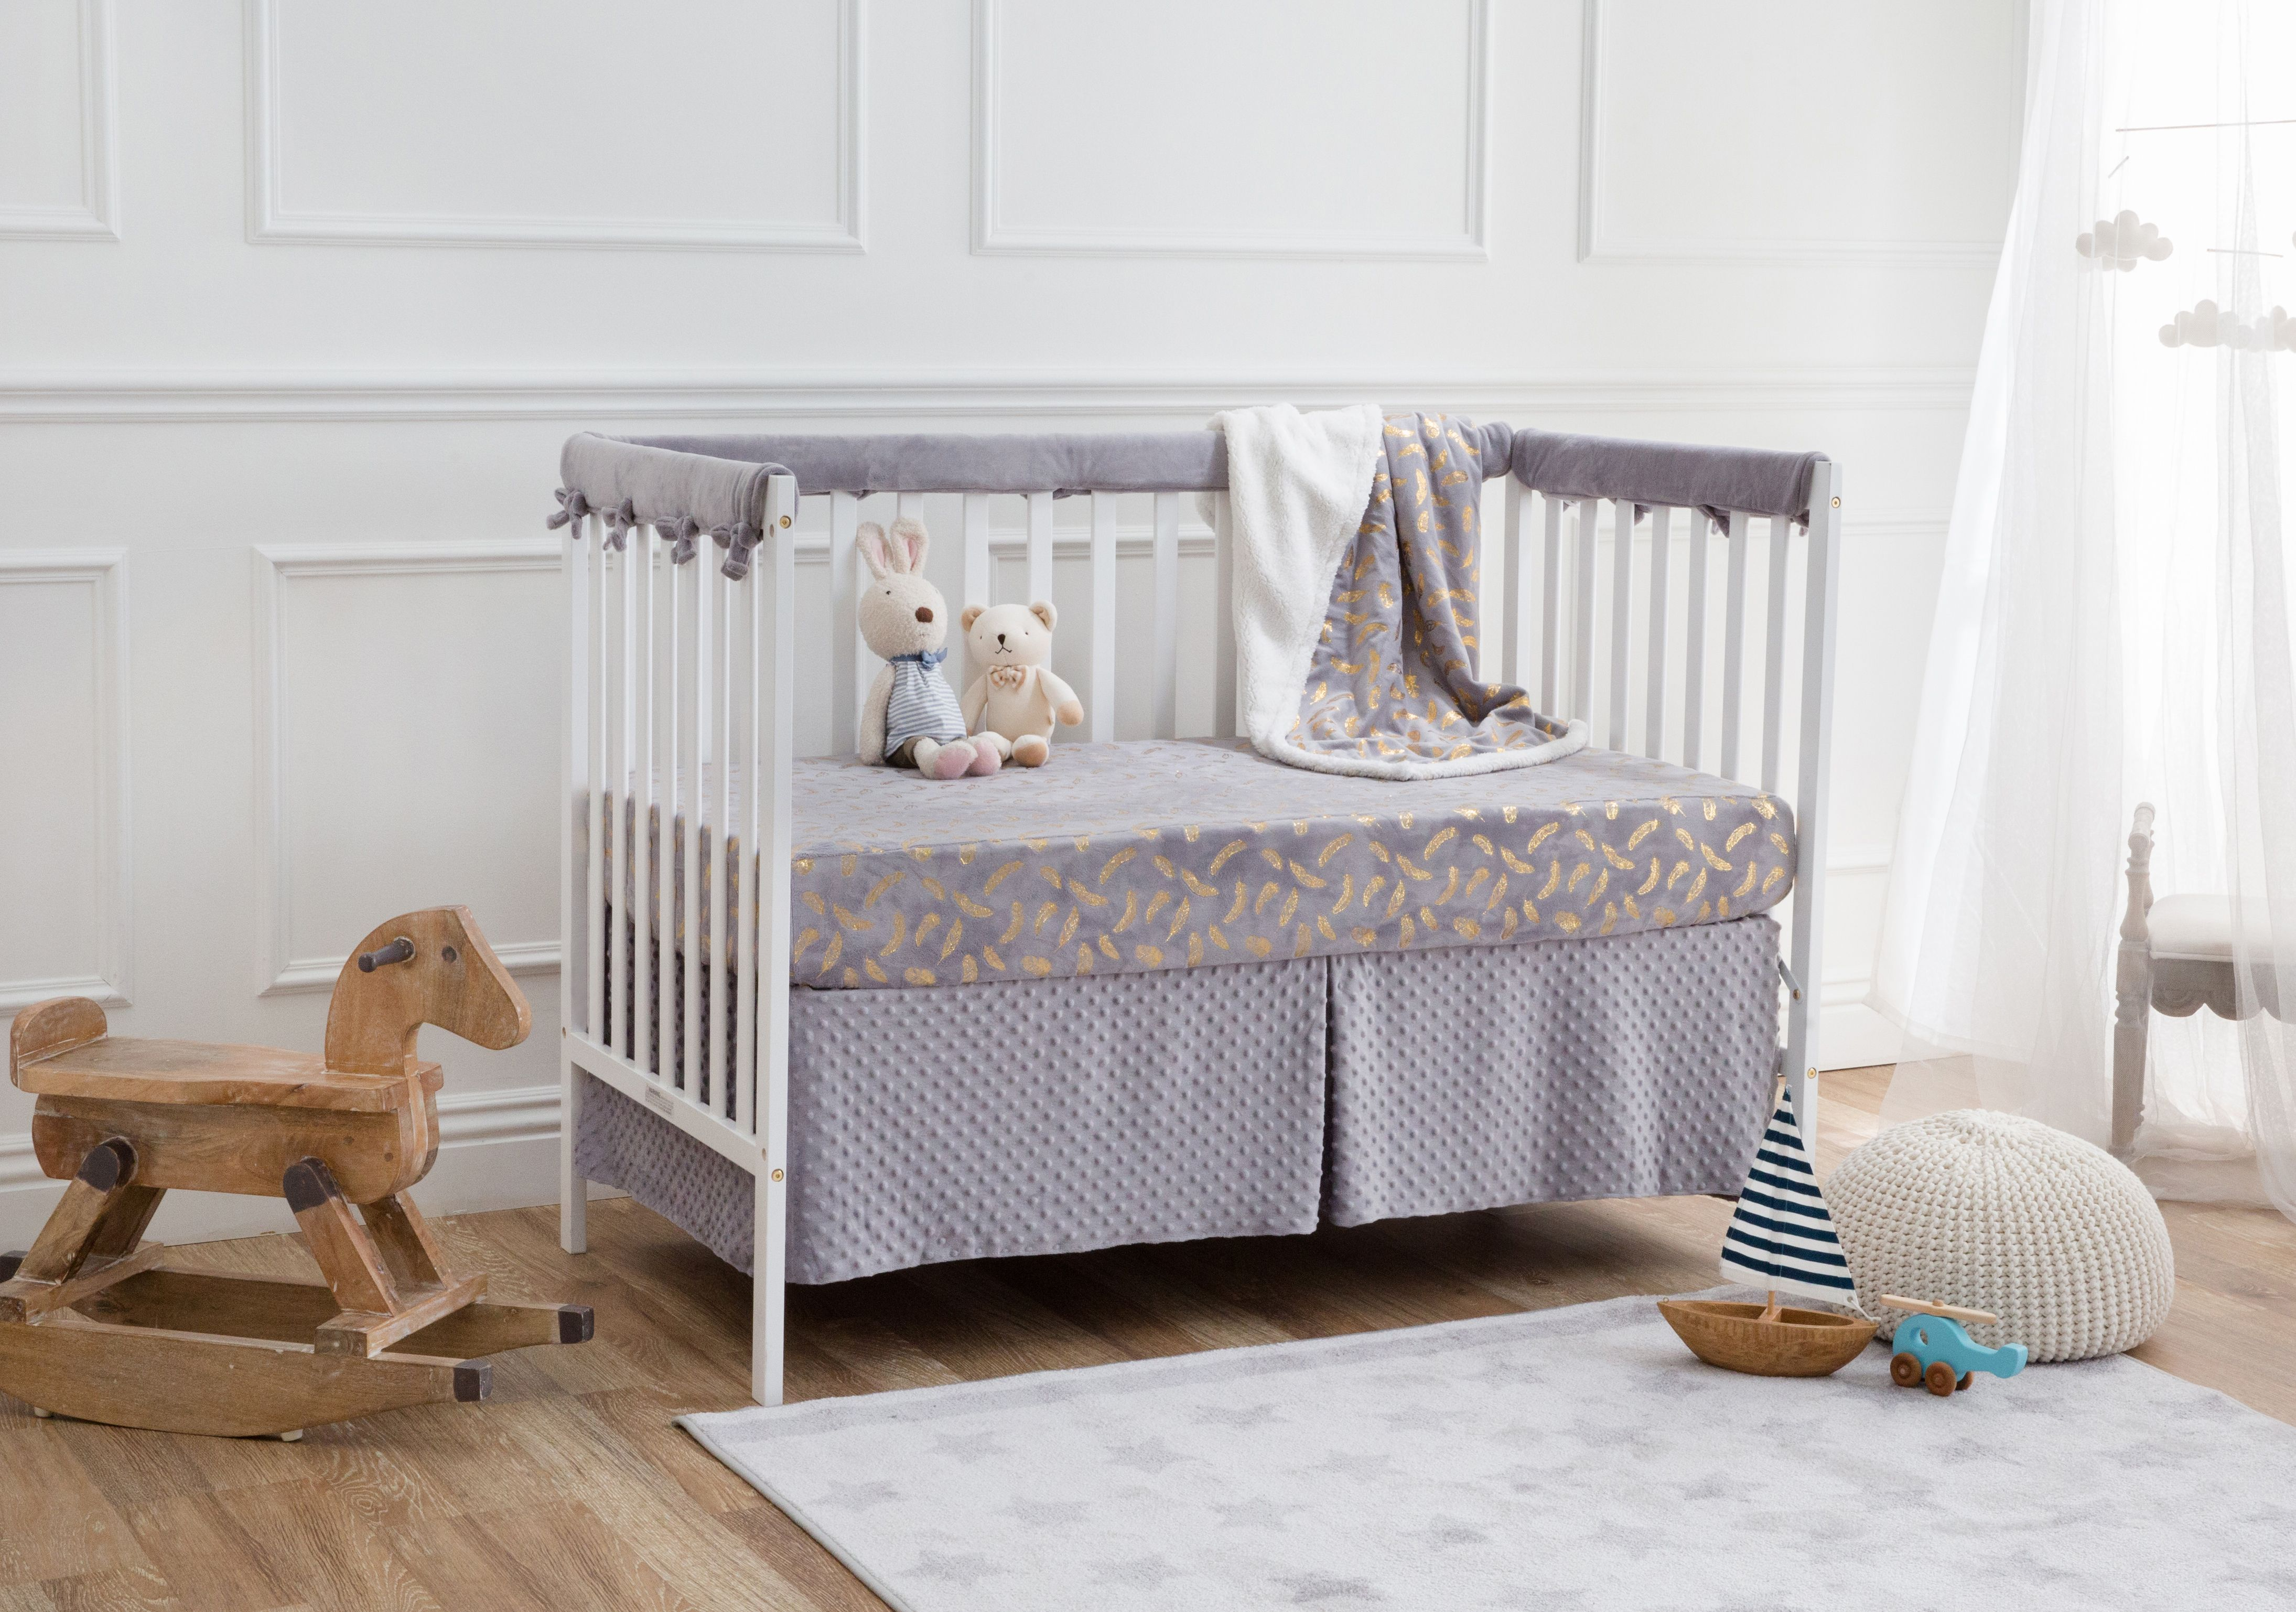 Mix and Match nursery baby bedding Bed, Toddler bed